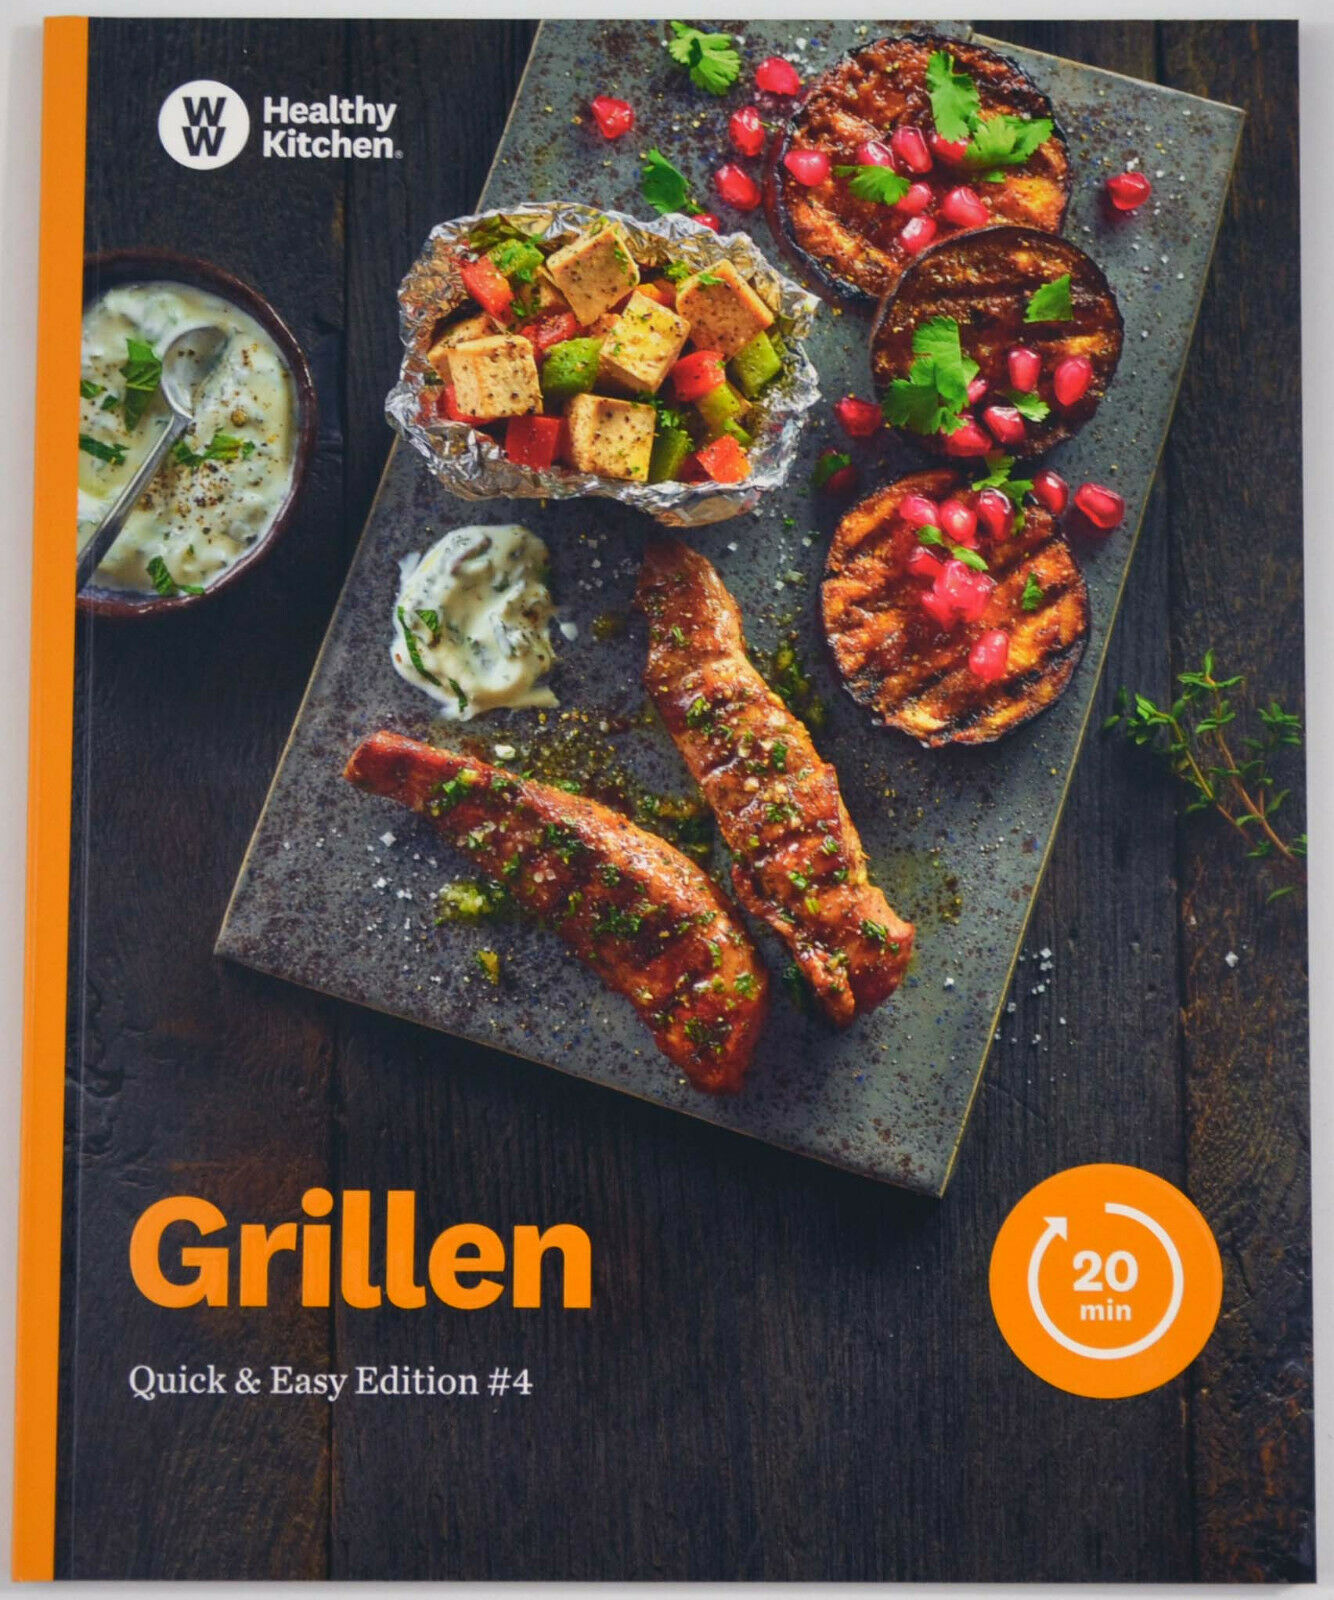 Grillen Kochbuch von Weight Watchers 2019 - *Quick & Easy Edition: #4*